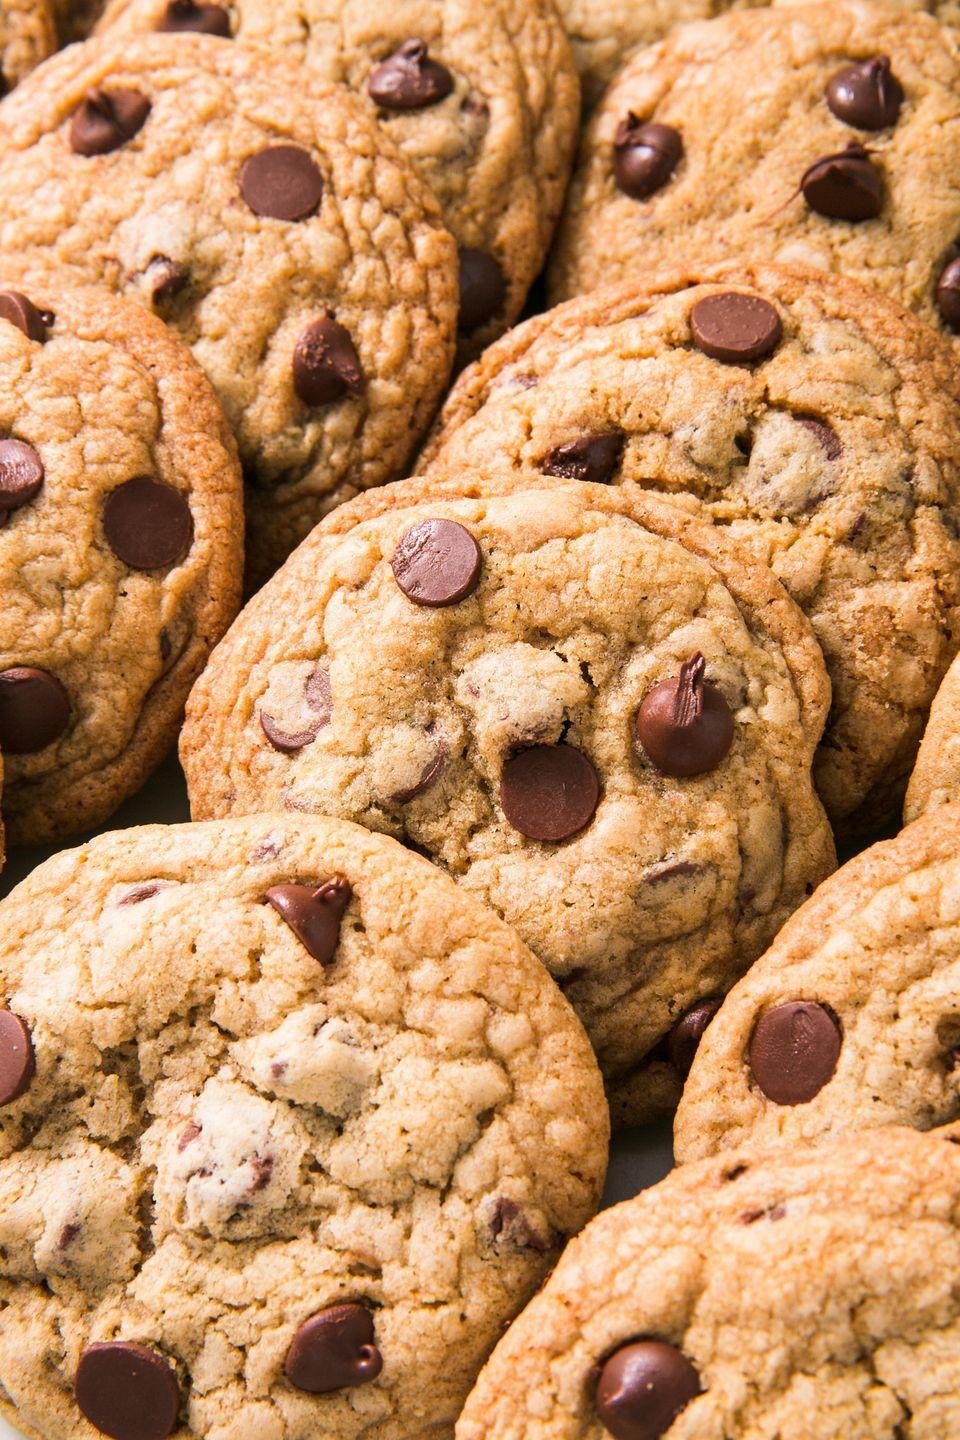 """<p>Beware: These cookies will go quickly. Our advice? Make a double batch.</p><p>Get the recipe from <a href=""""https://www.delish.com/cooking/a25487454/mrs-fields-cookies-recipe/"""" rel=""""nofollow noopener"""" target=""""_blank"""" data-ylk=""""slk:Delish"""" class=""""link rapid-noclick-resp"""">Delish</a>. </p>"""